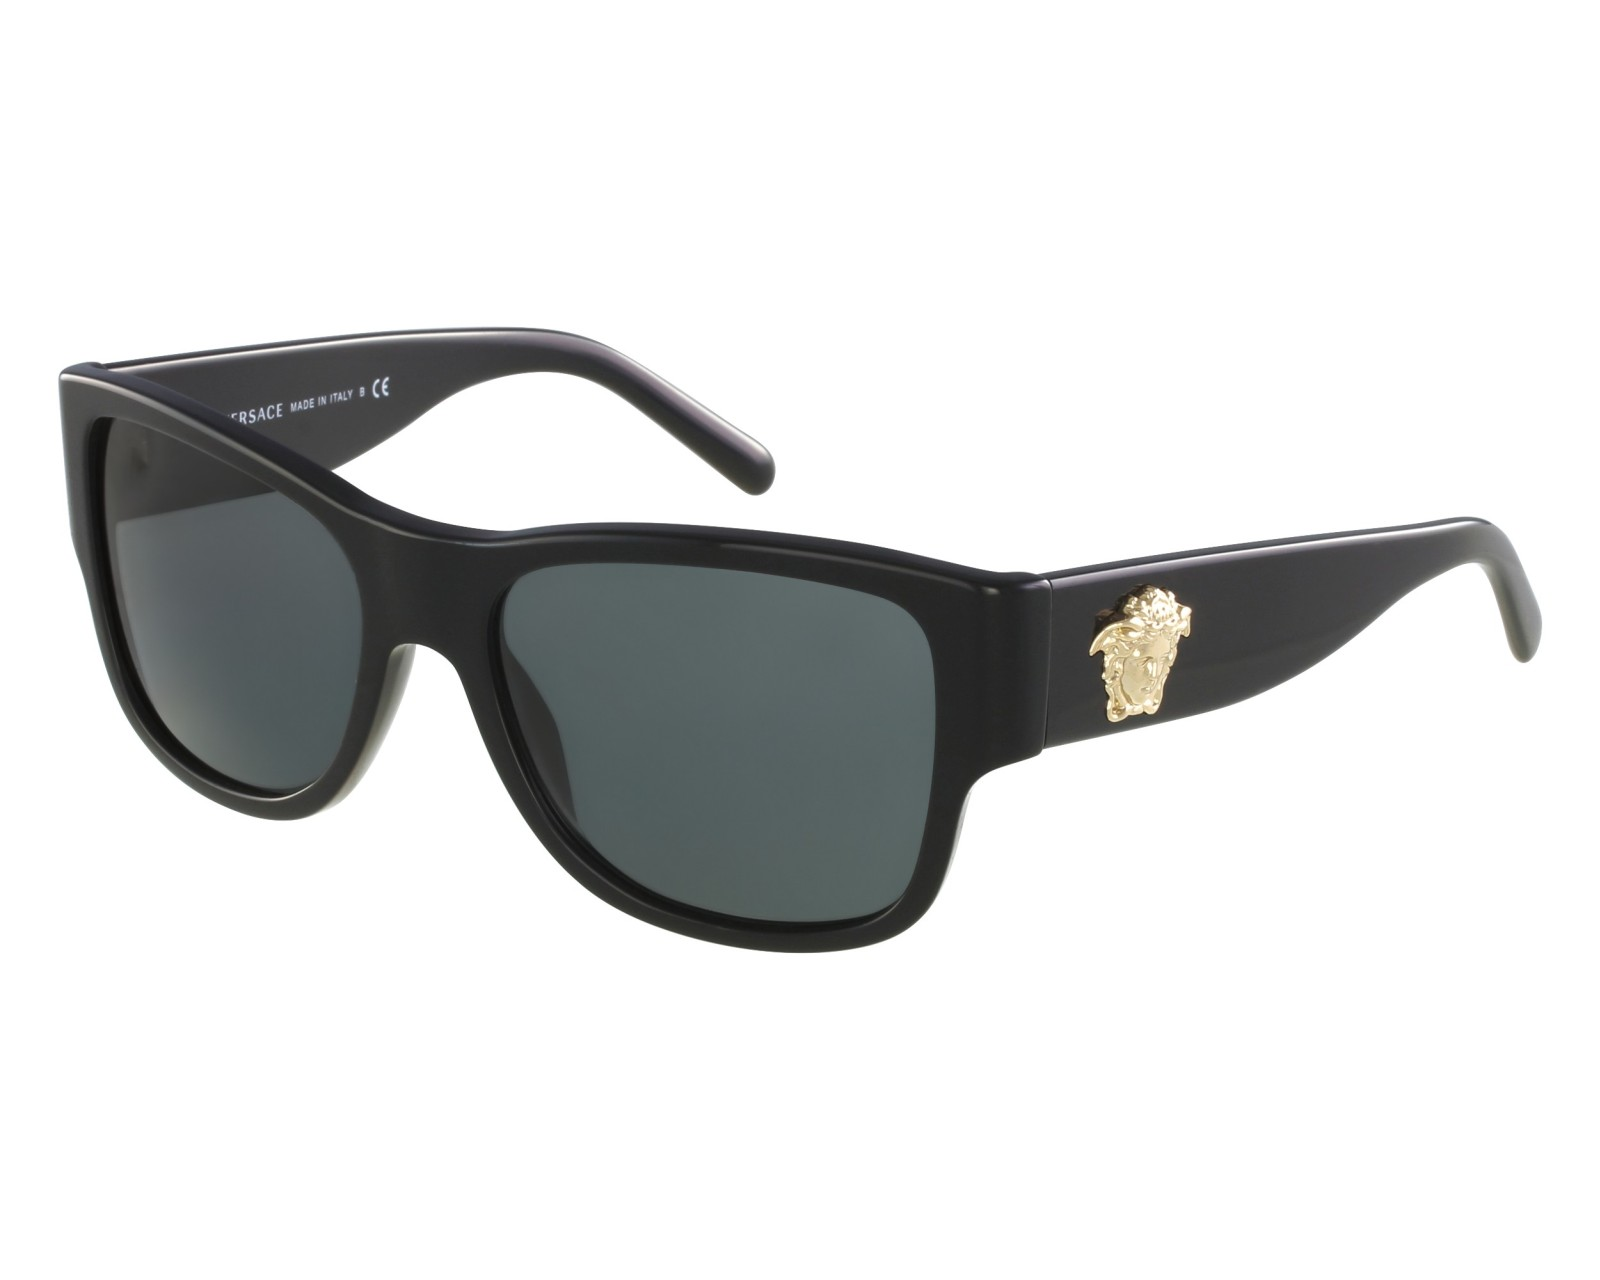 2faf08ed98c Sunglasses Versace VE-4275 GB1 87 58-18 Black Gold front view